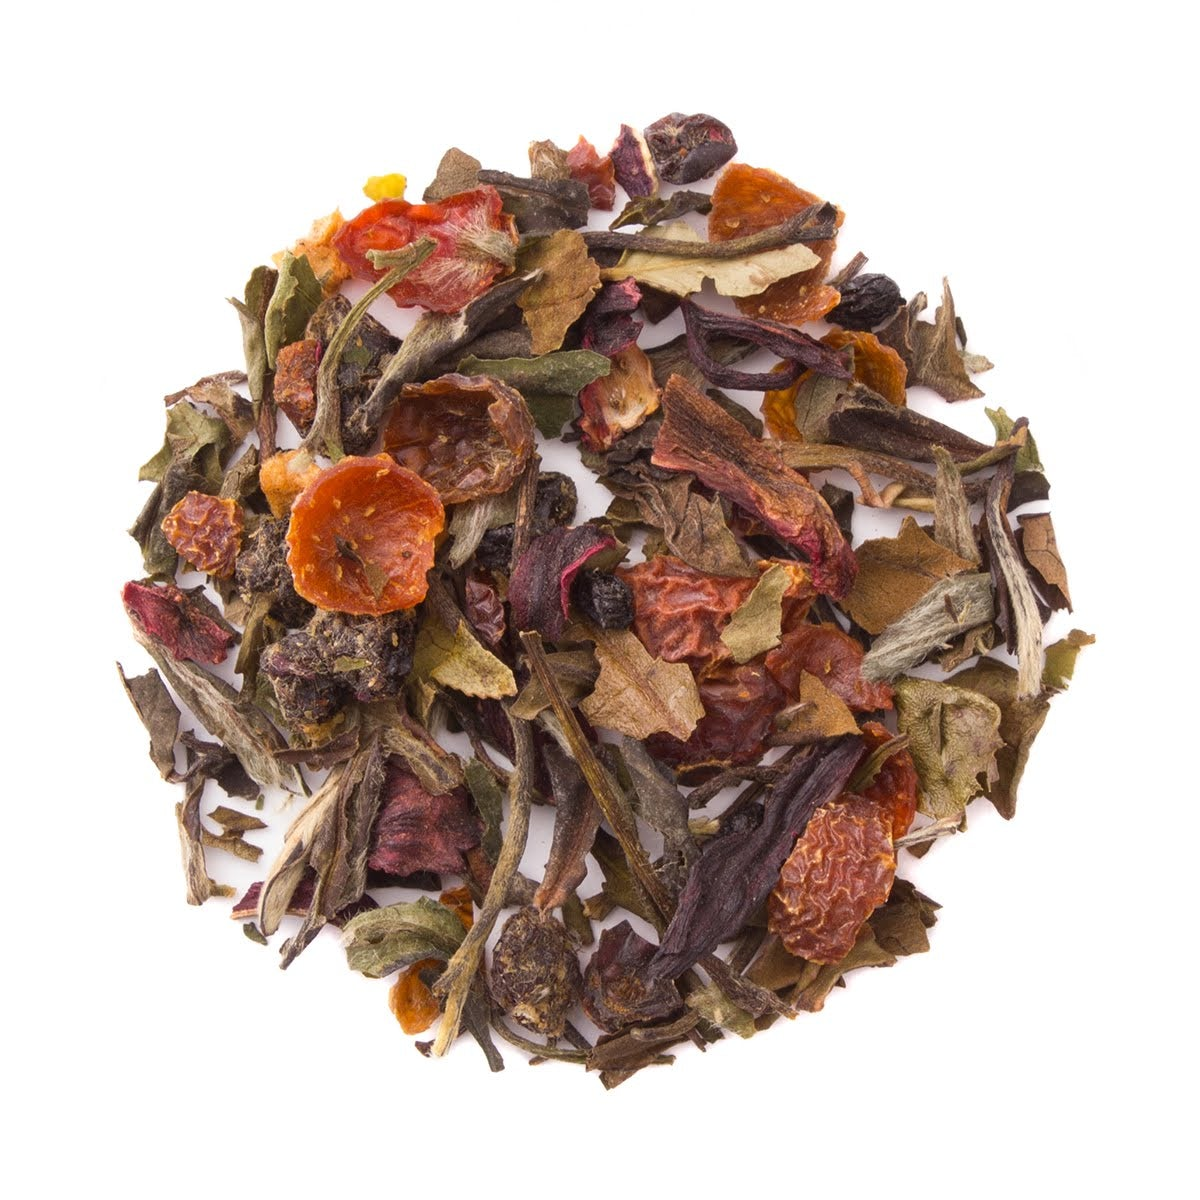 Loose Leaf White Tea - Organic White Tea - Premium White Tea - Heavenly Tea Leaves